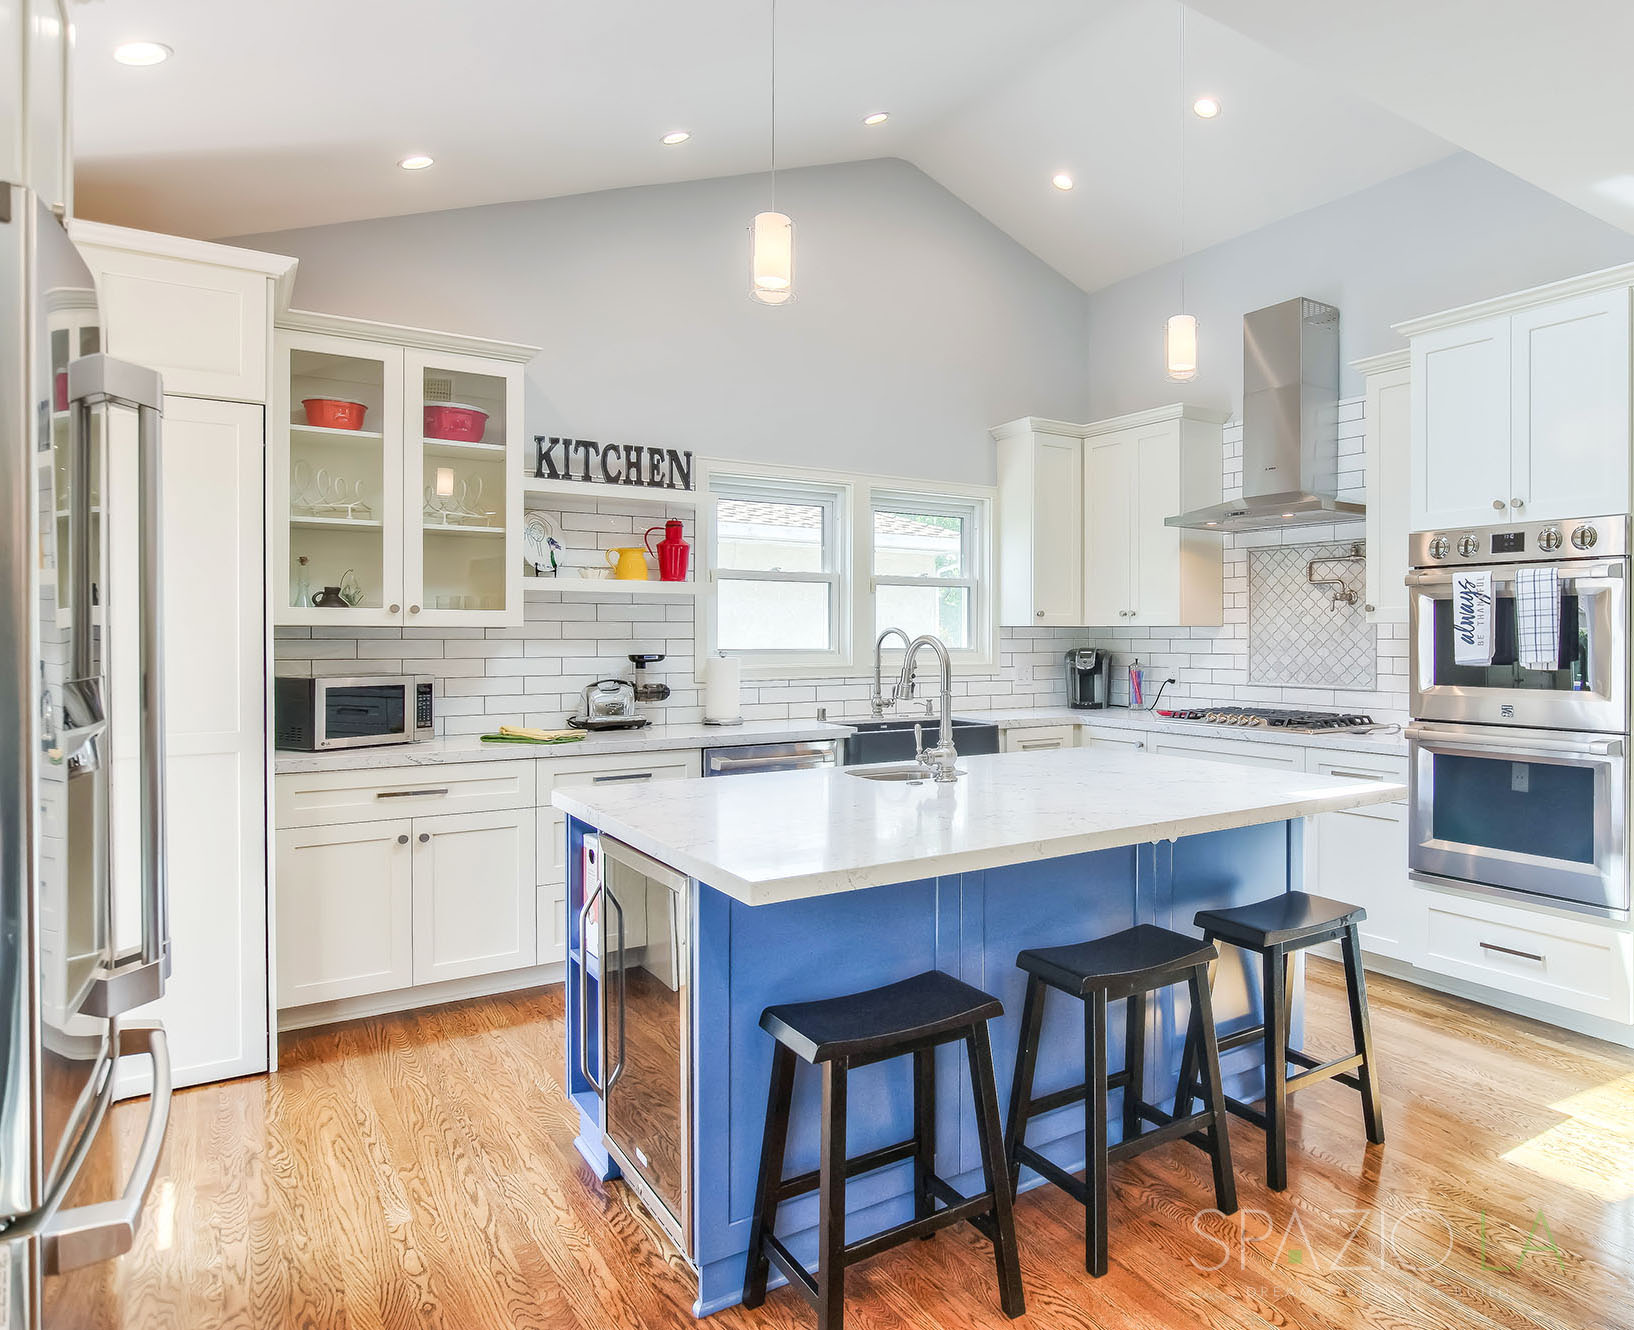 Bright and spacious kitchen after remodel